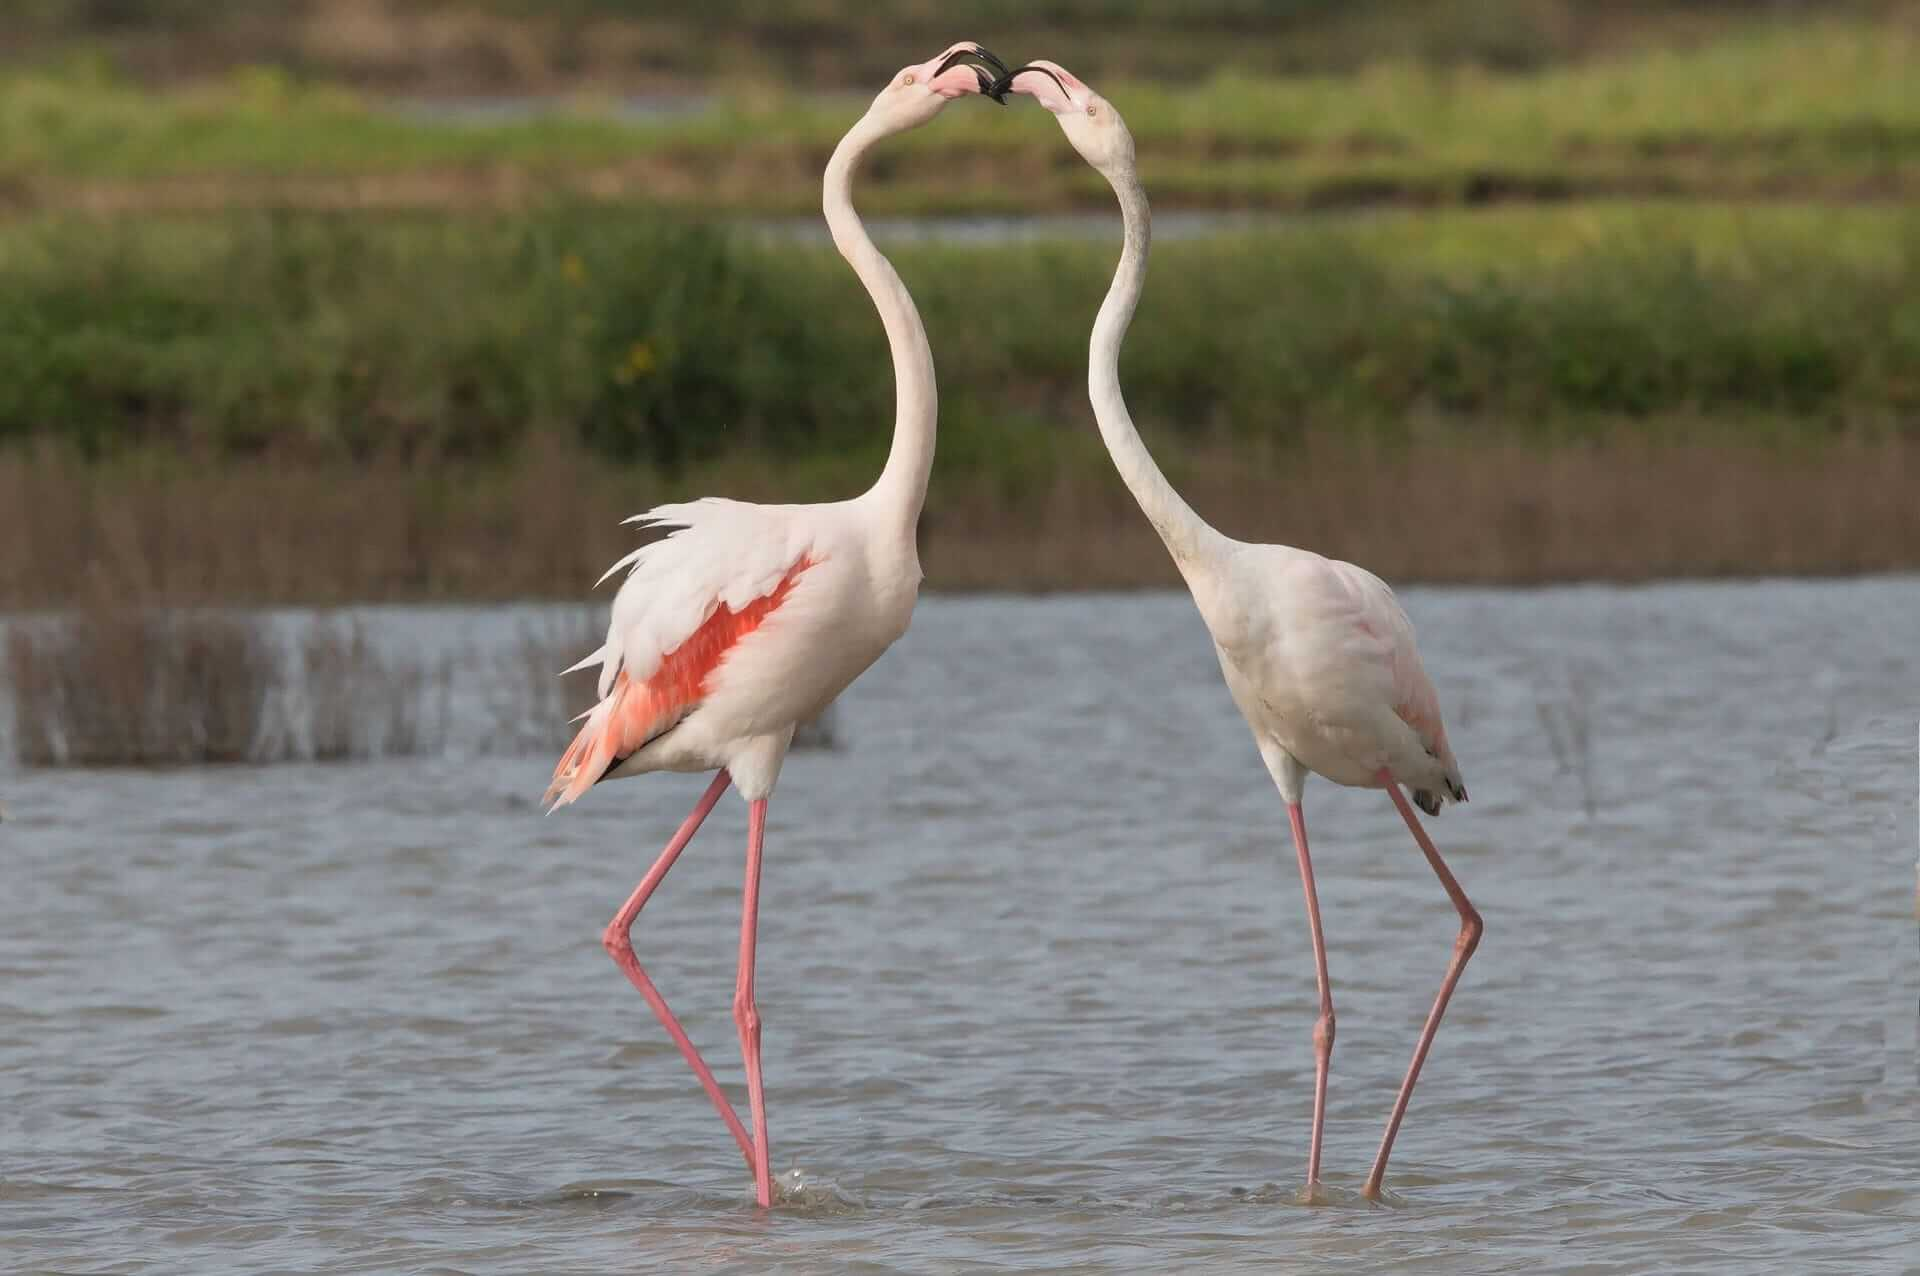 They got their name from the unusual color of their feathers, and flamingos in Spanish means fire